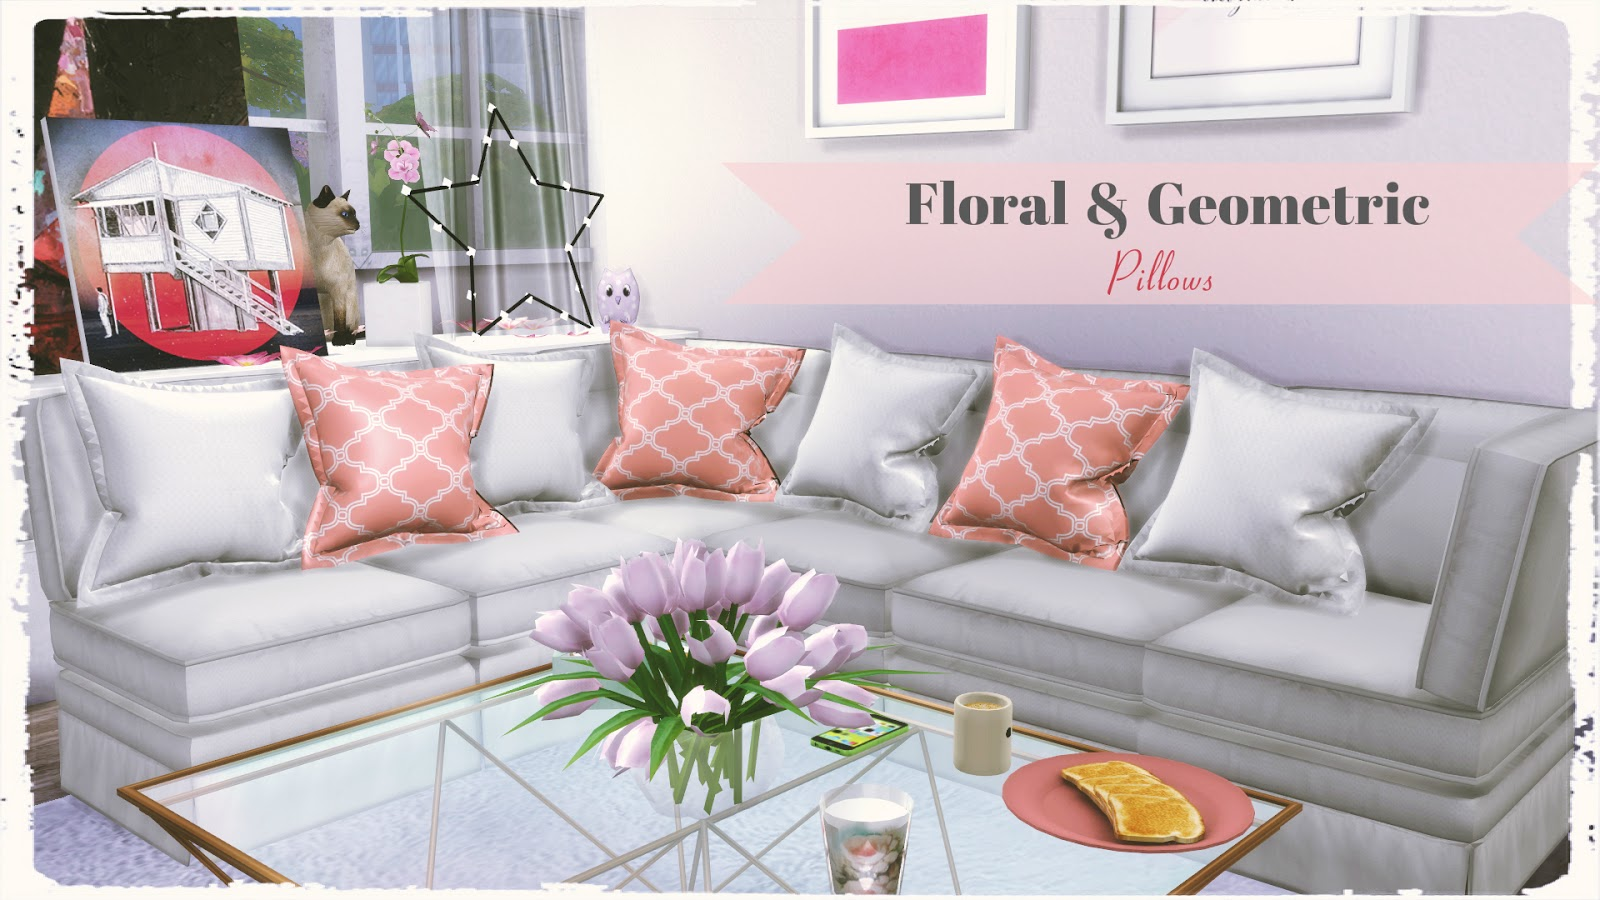 Sims 4 Floral Amp Geometric Pillows Dinha